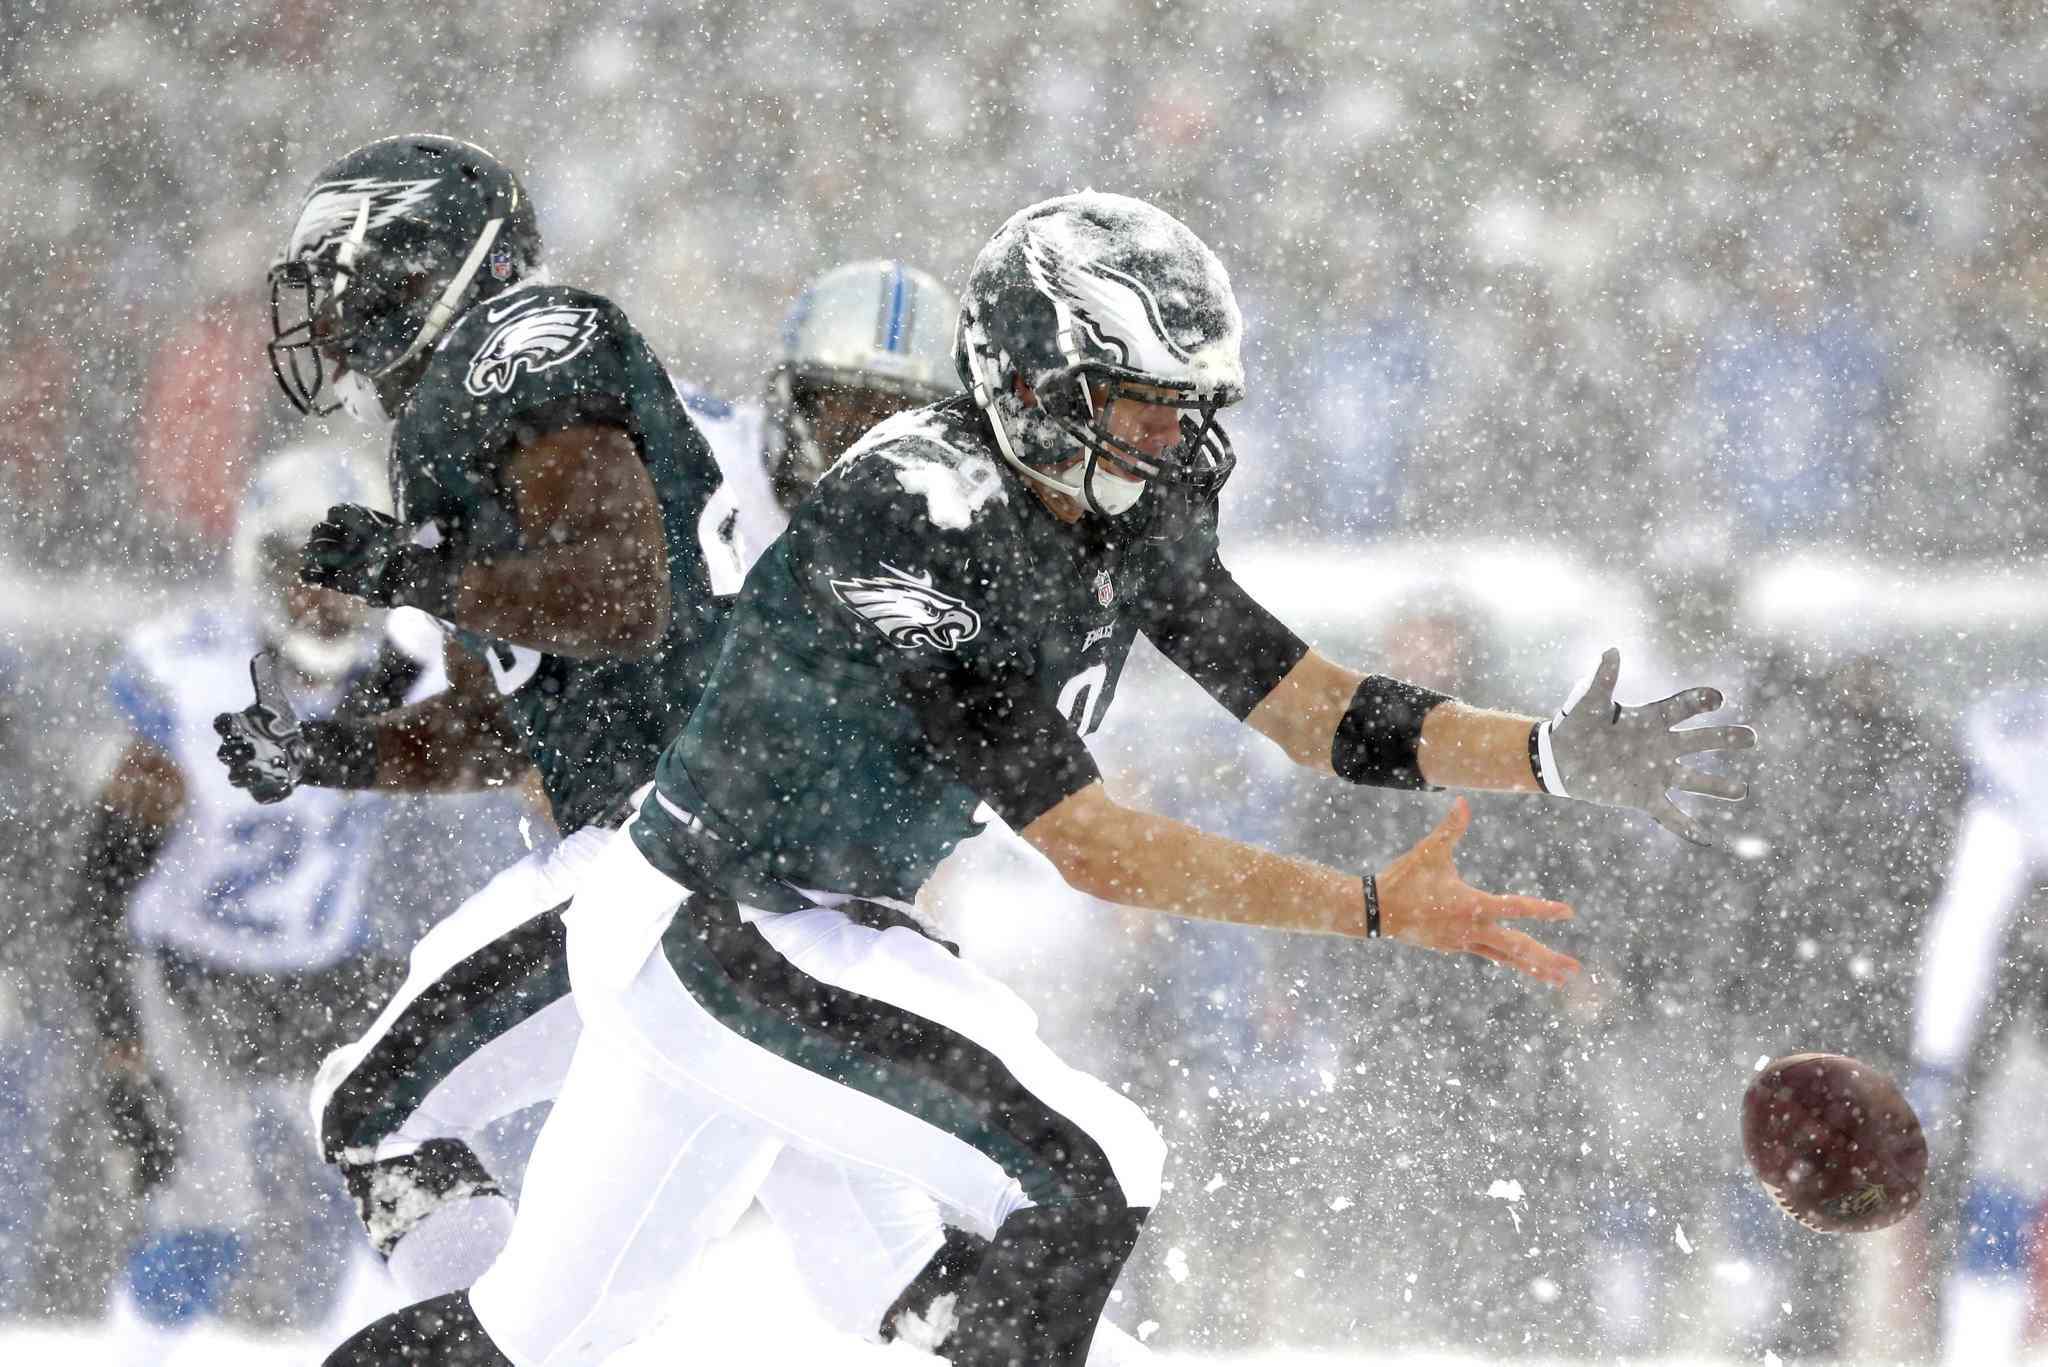 Nick Foles (centre) of the Philadelphia Eagles can't hang on to the ball during the first half of the game against the Detroit Lions.